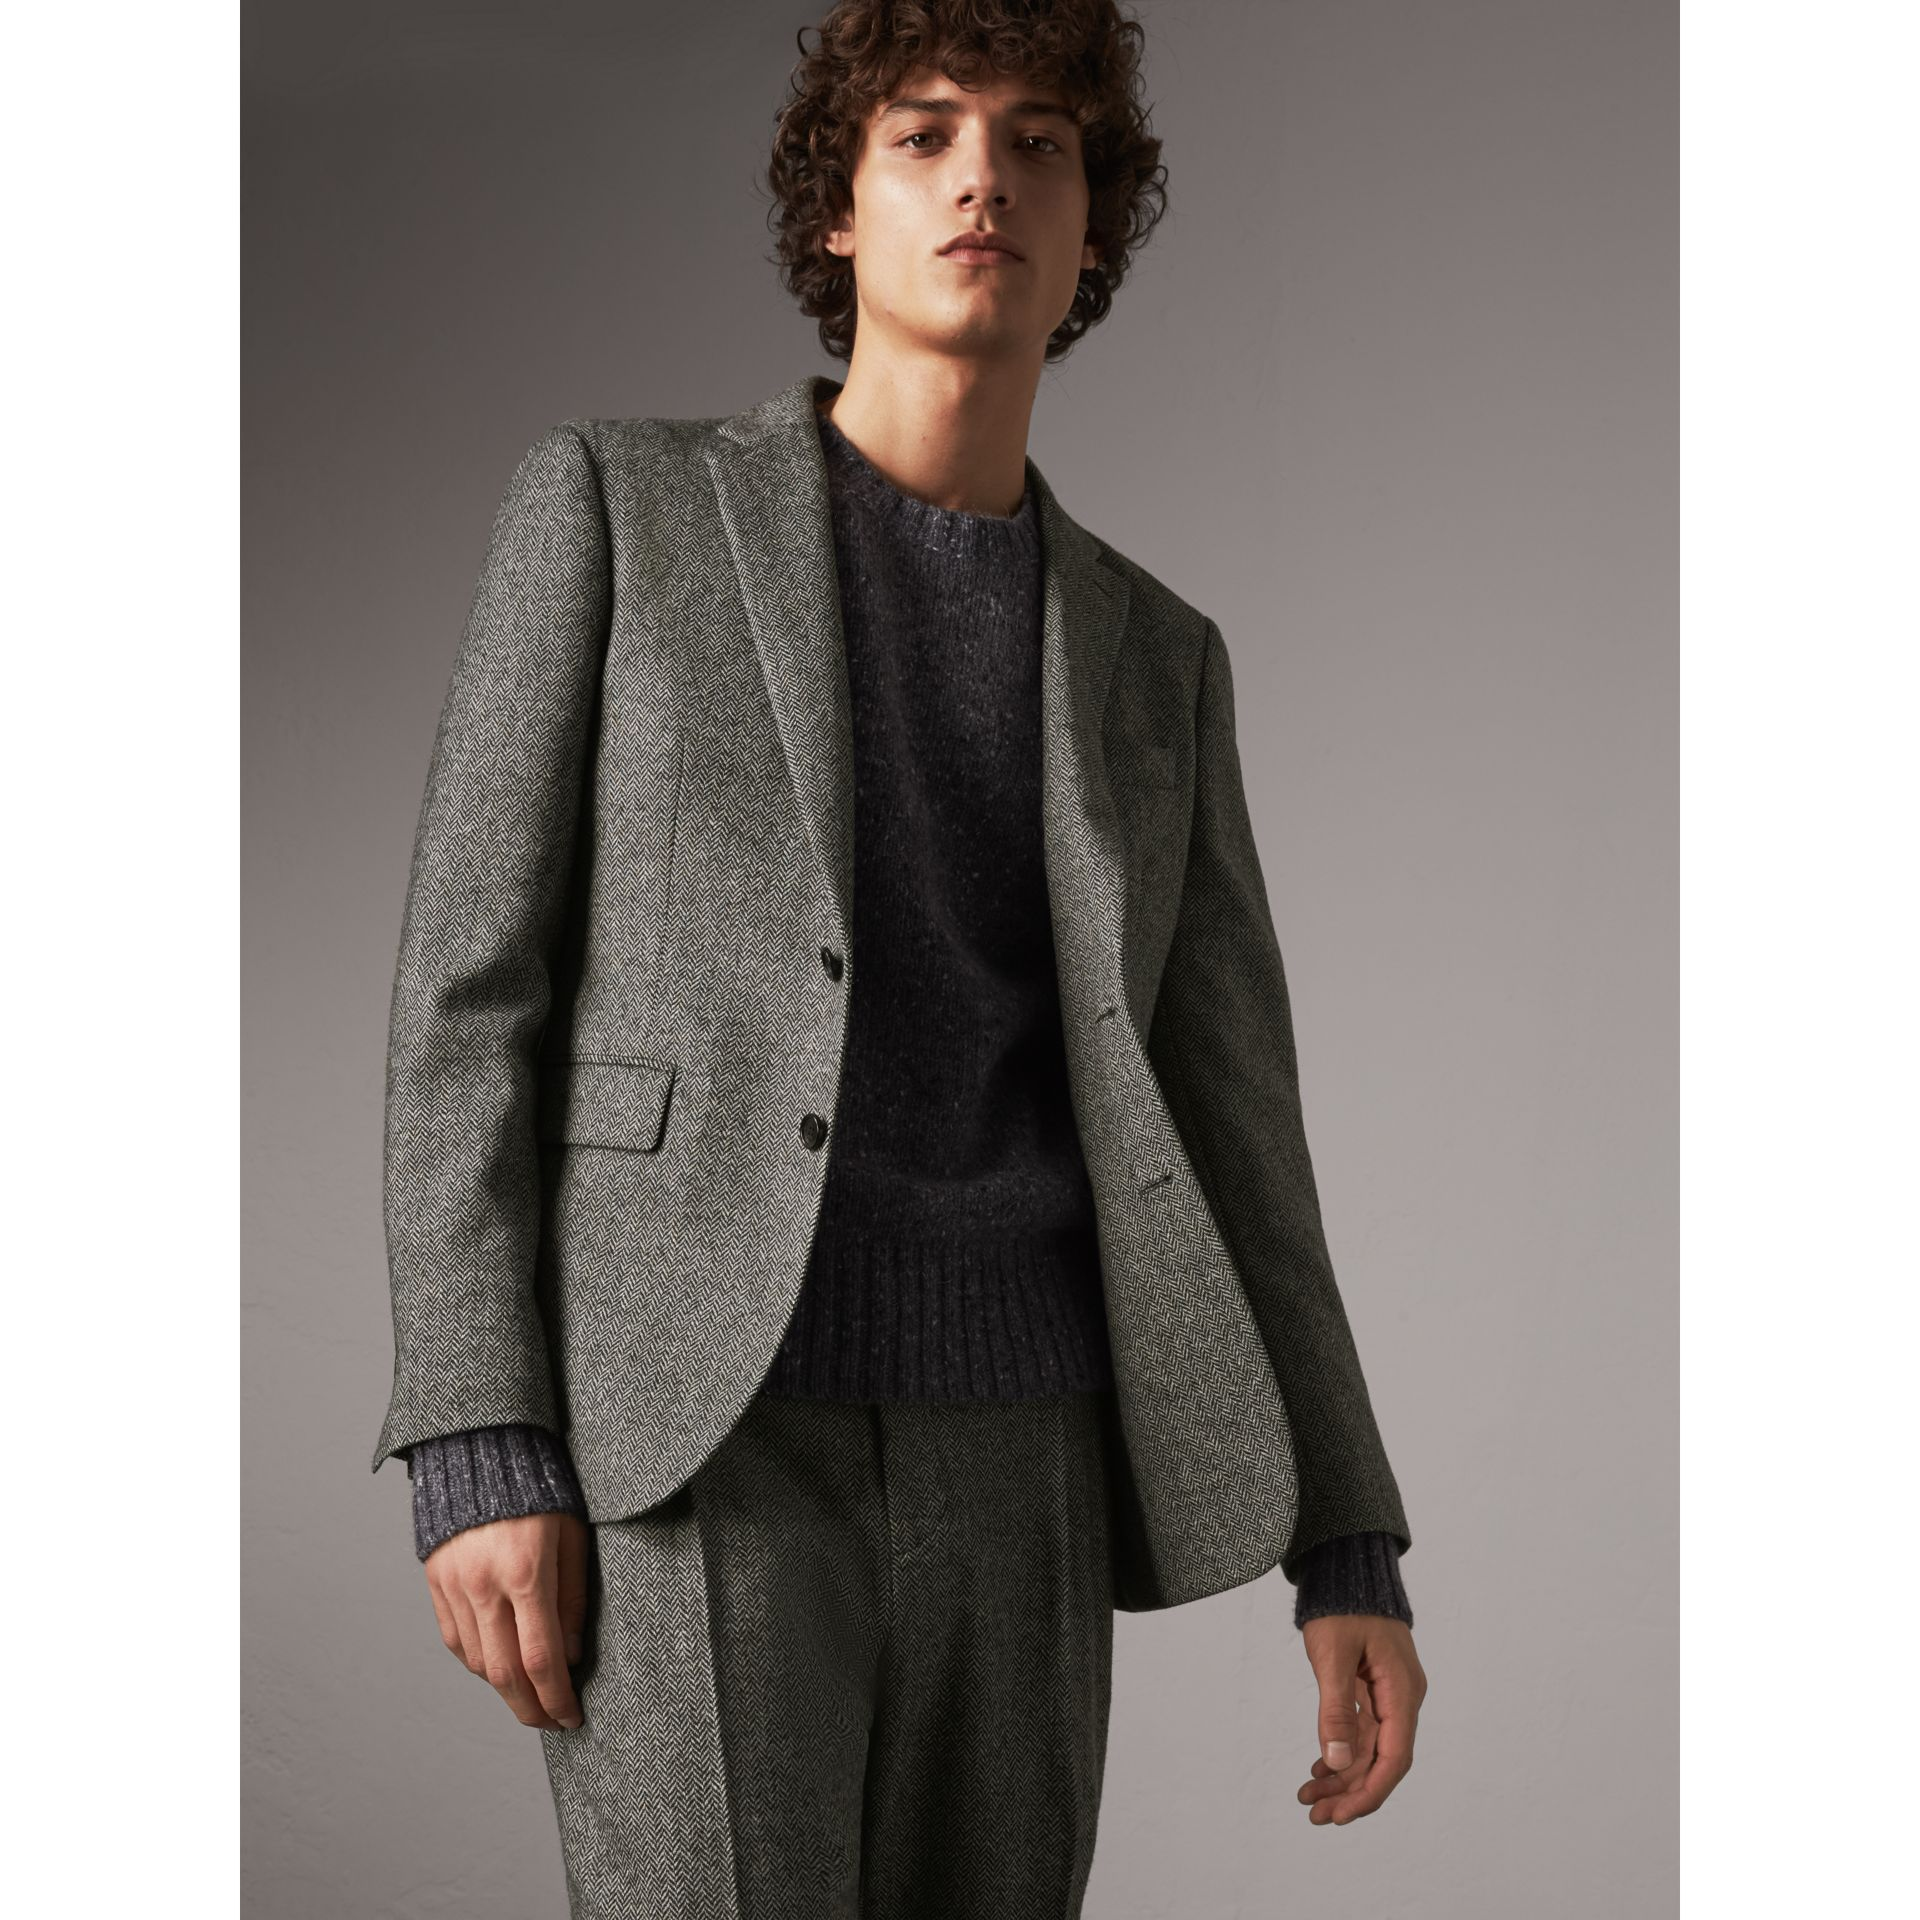 Soho Fit Herringbone Wool Tailored Jacket in Black / White - Men | Burberry - gallery image 7